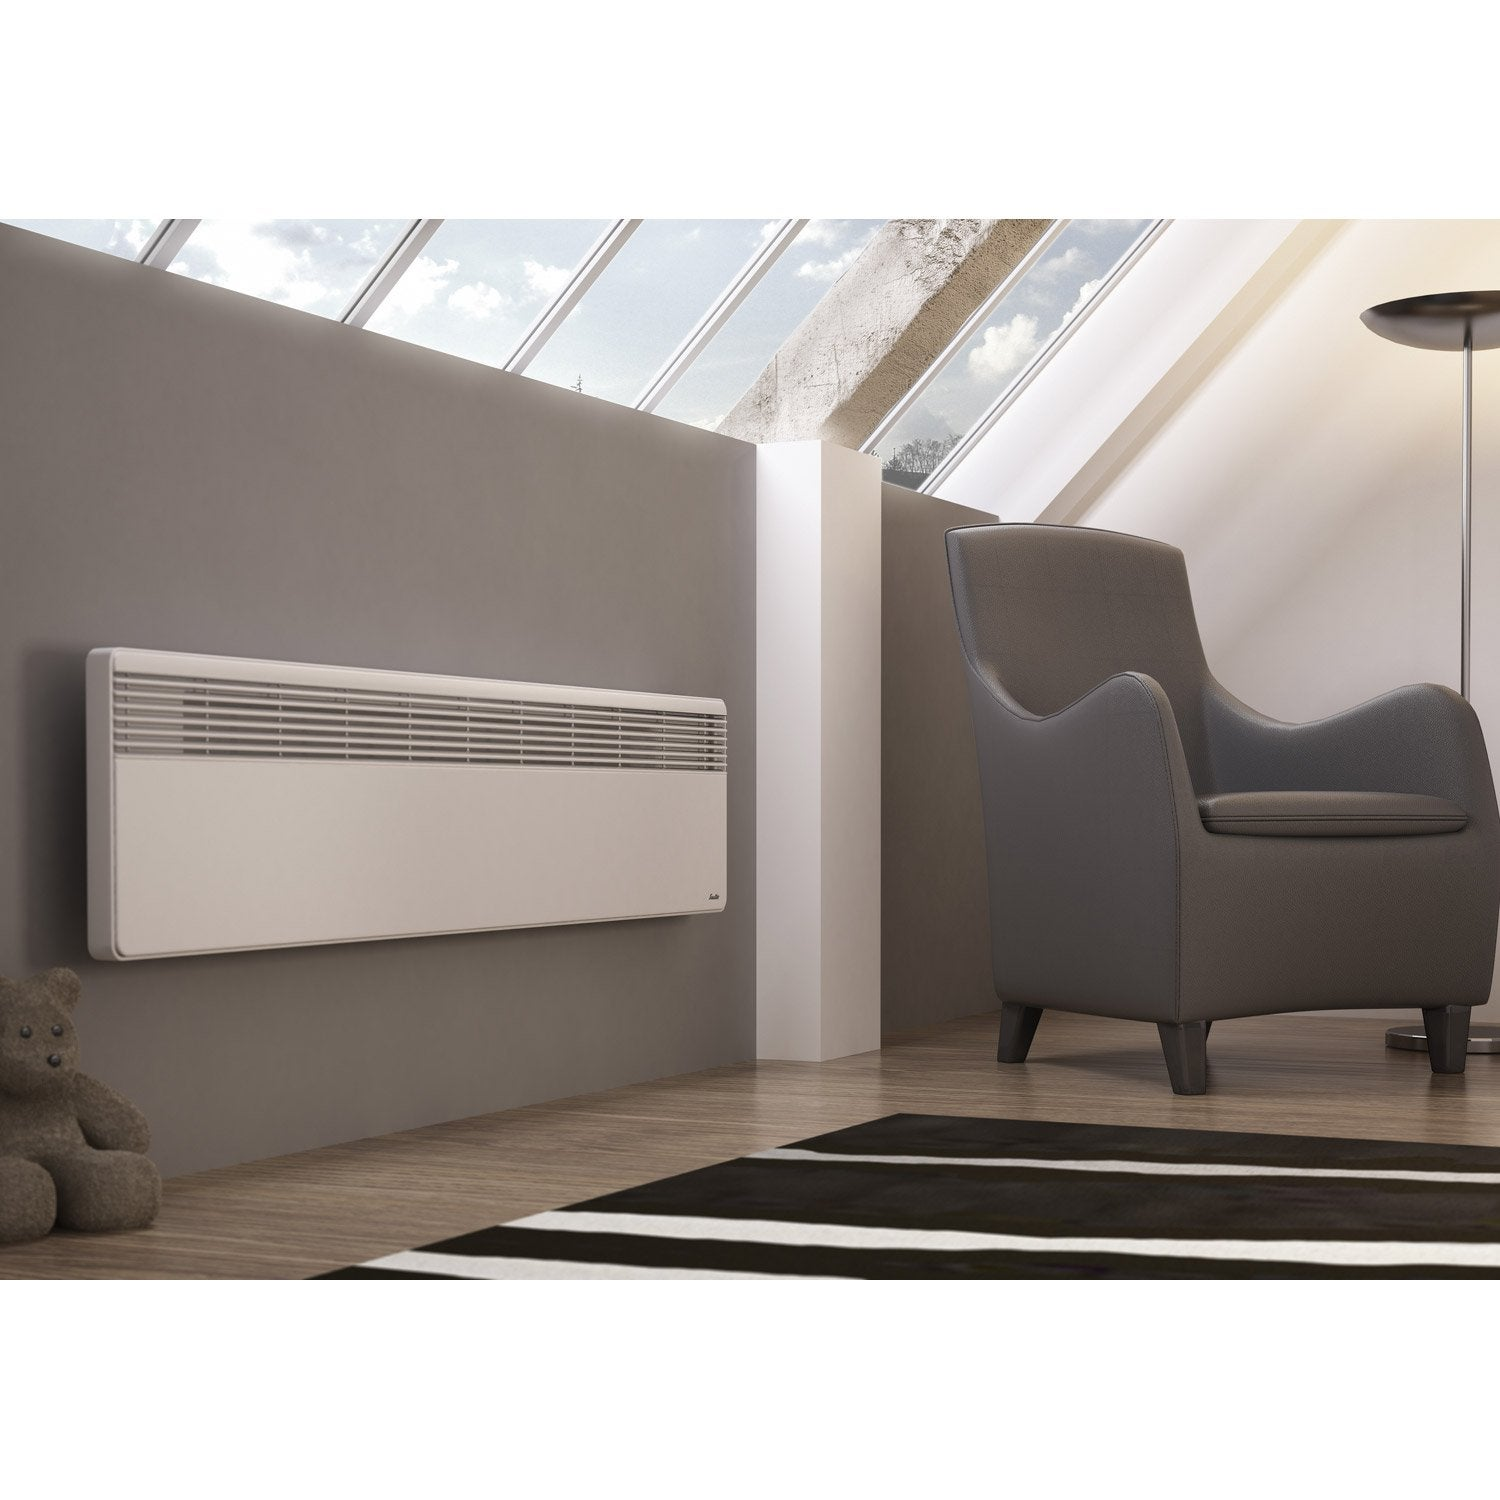 radiateur lectrique convection sauter lucki plinthe. Black Bedroom Furniture Sets. Home Design Ideas